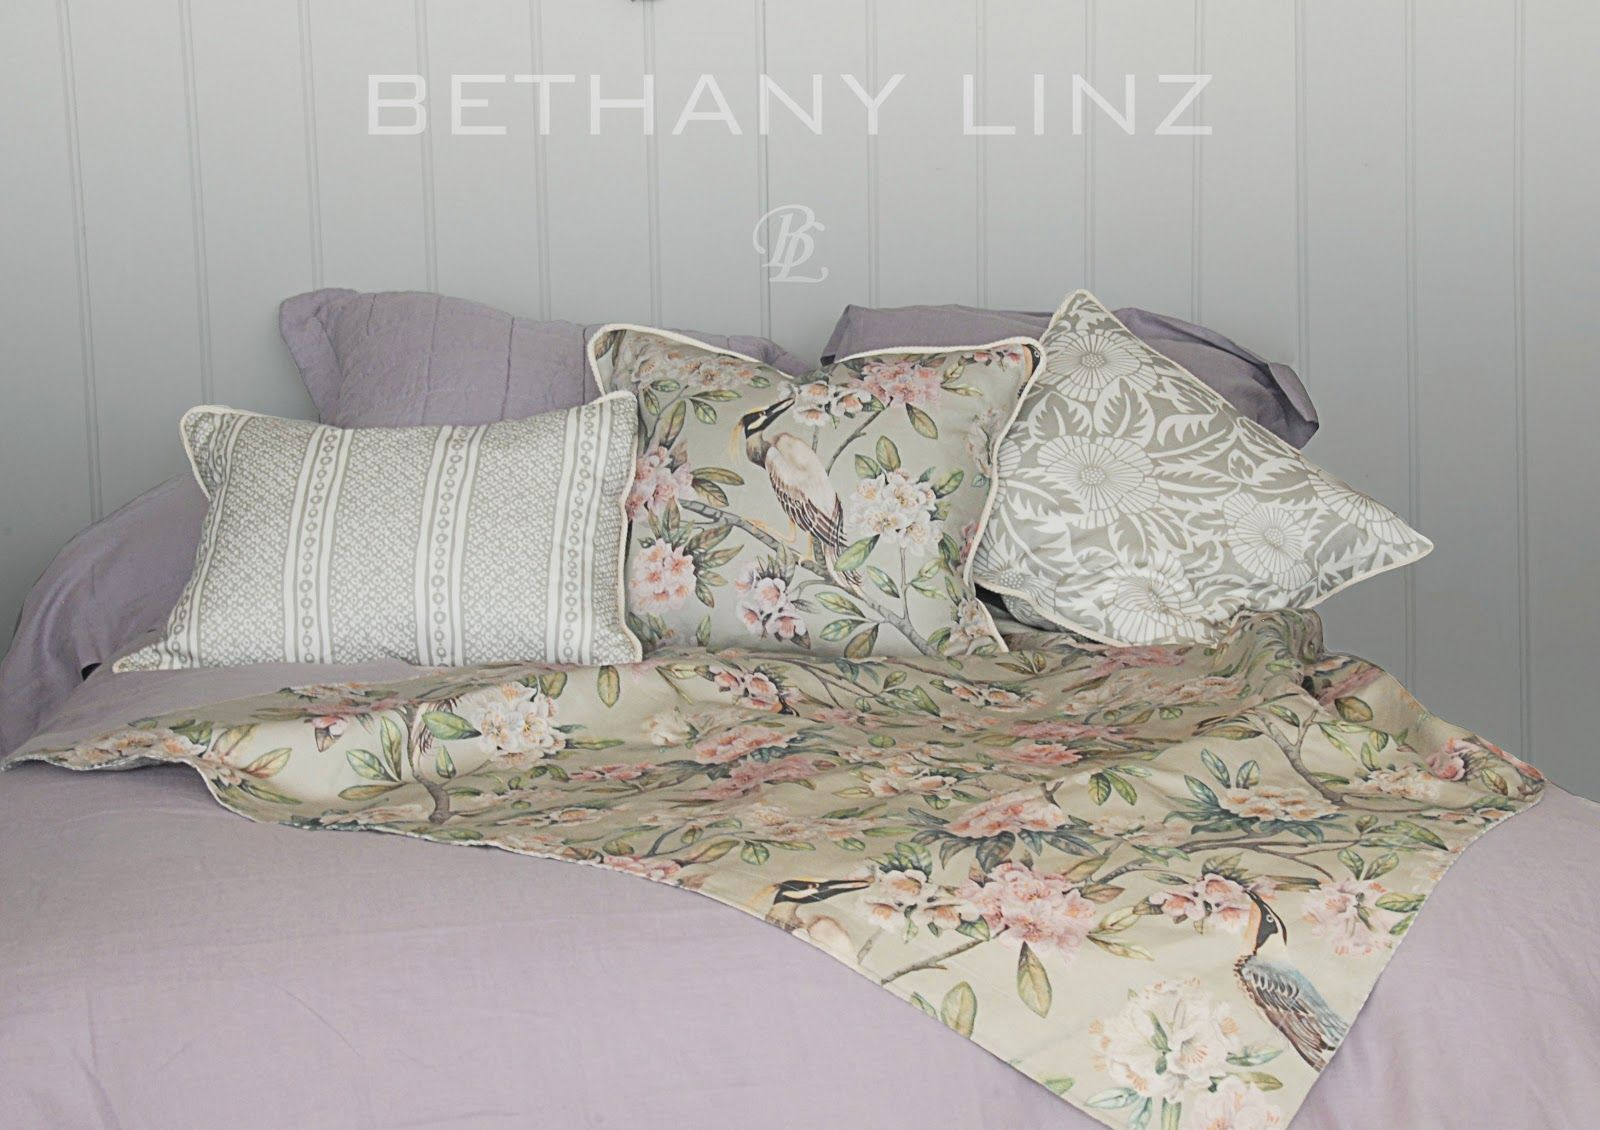 bethany+linz+V&A+bedroom.jpg 1,600×1,130 pixels Adams